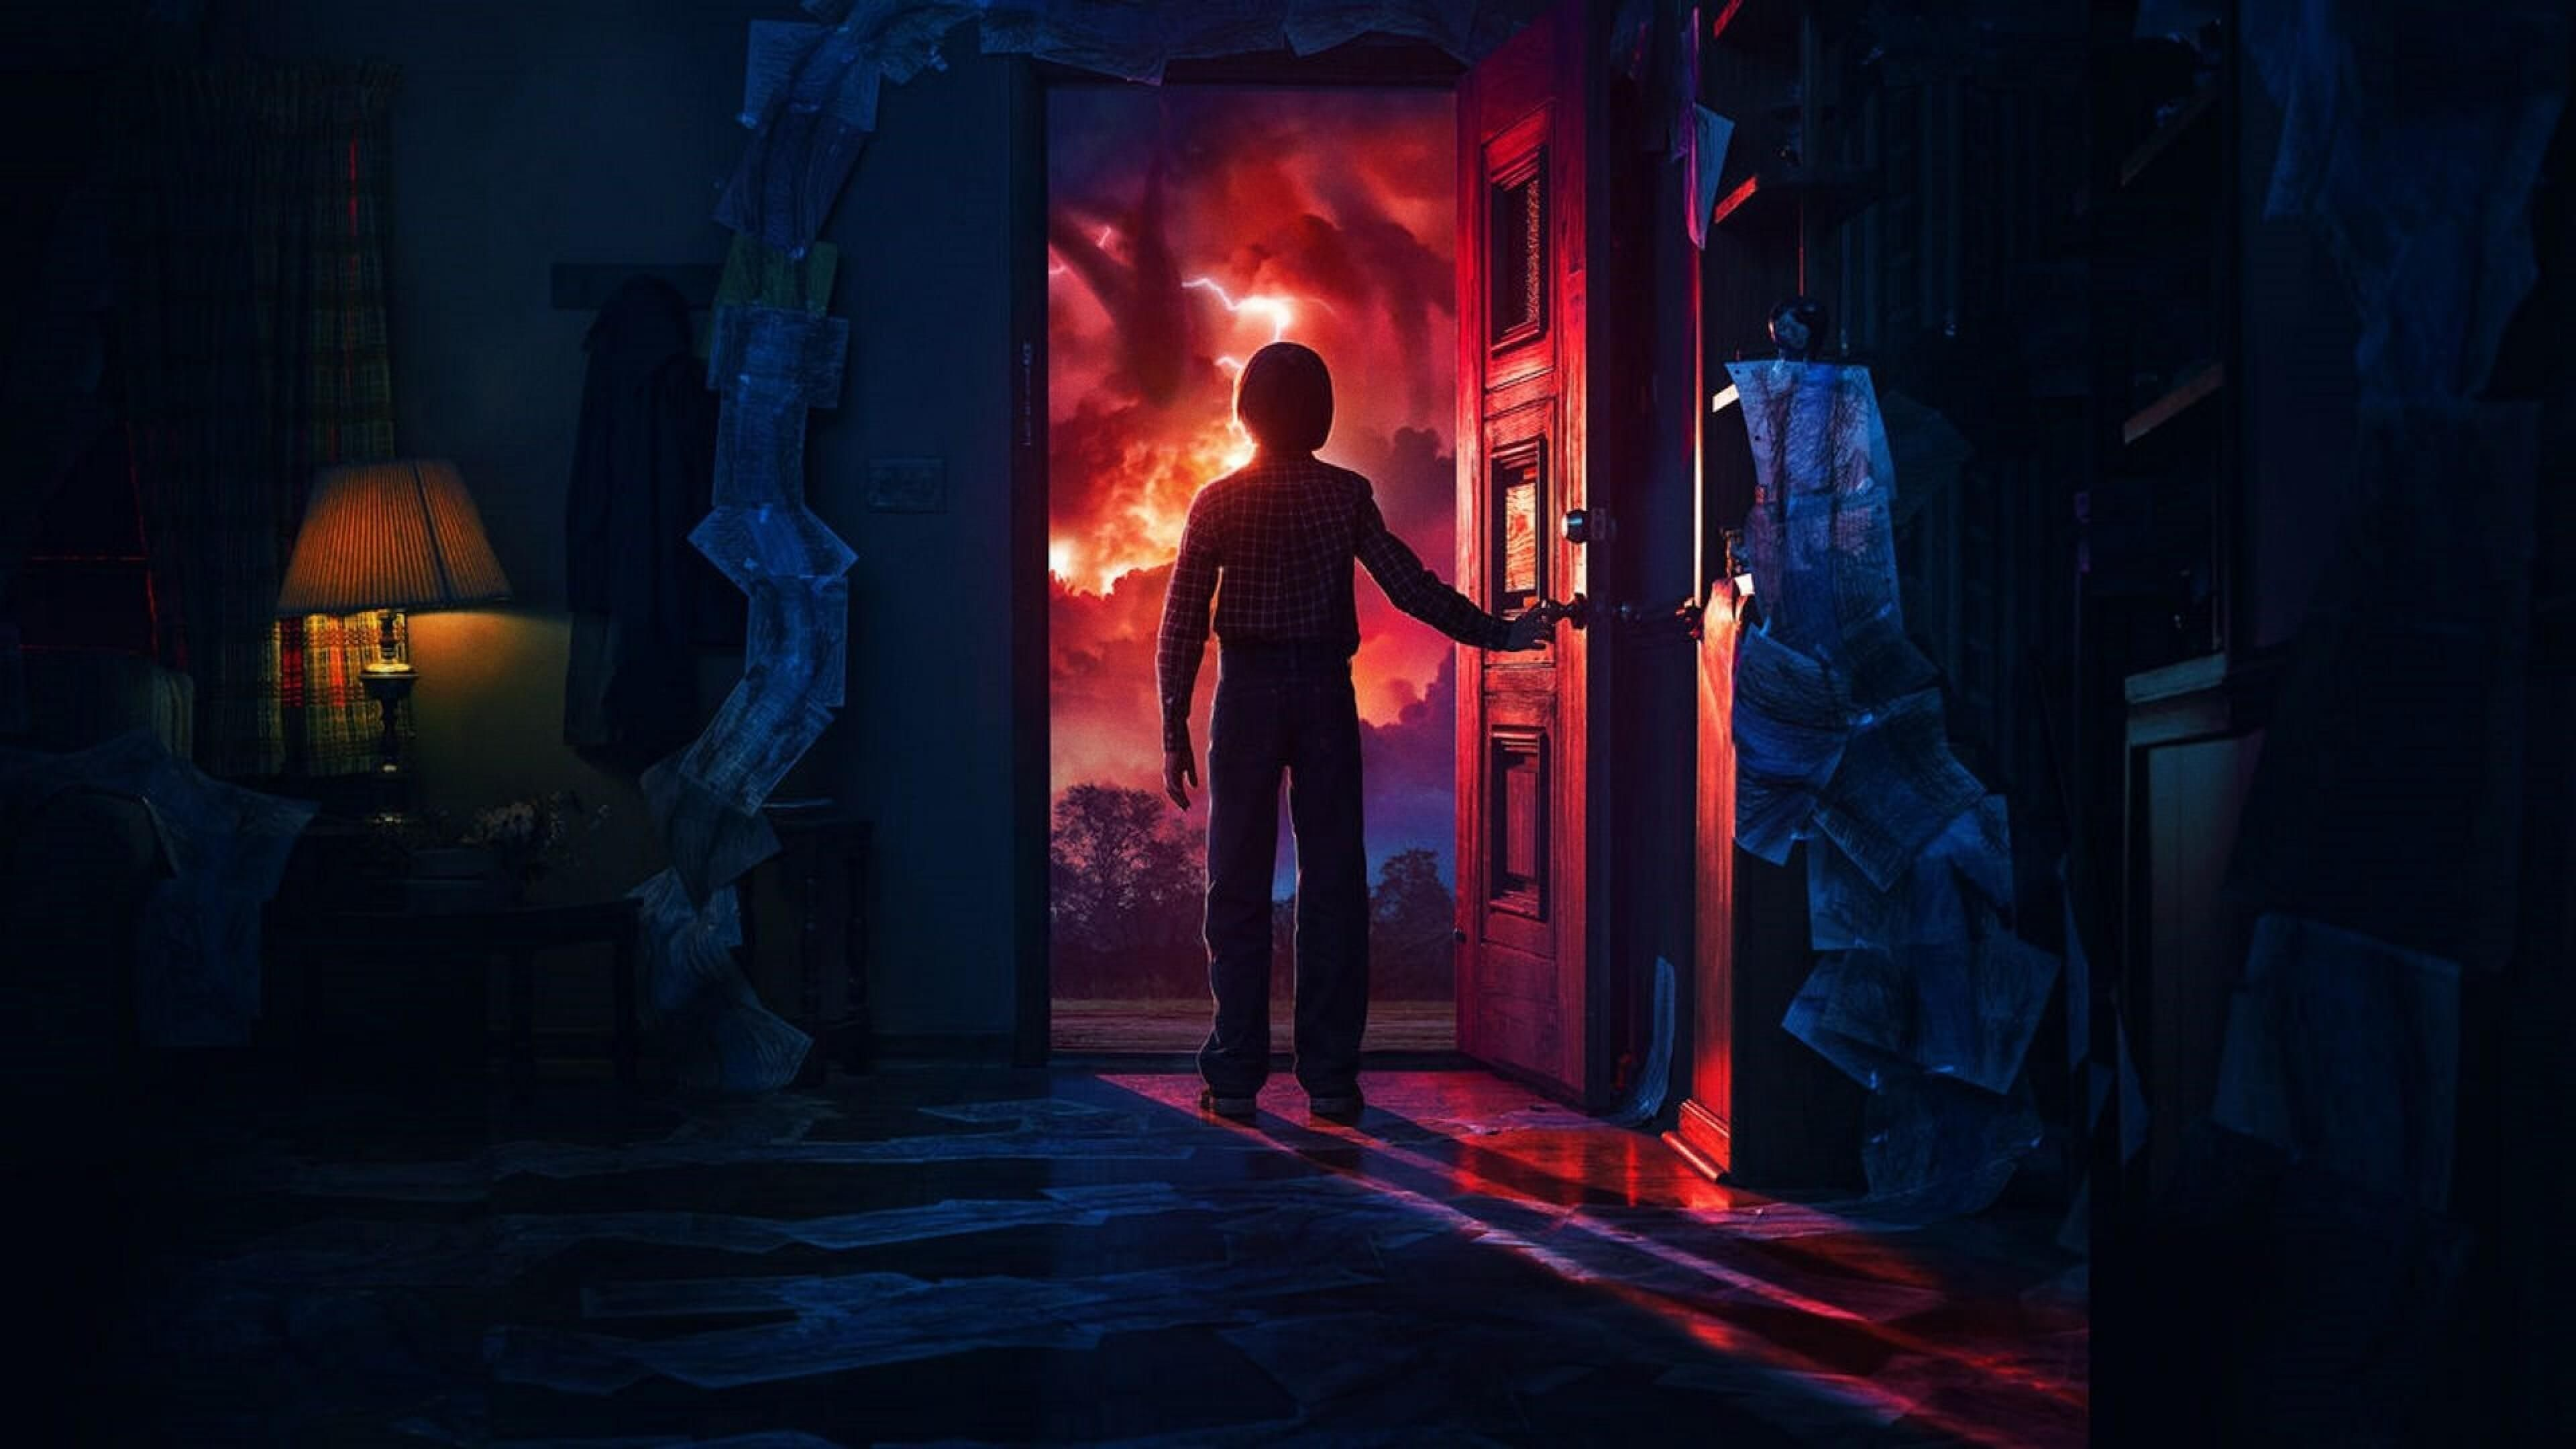 Free Stranger Things Wallpaper For Iphone 4k Hd Stranger Things Wallpaper Stranger Things Season Background Images Wallpapers